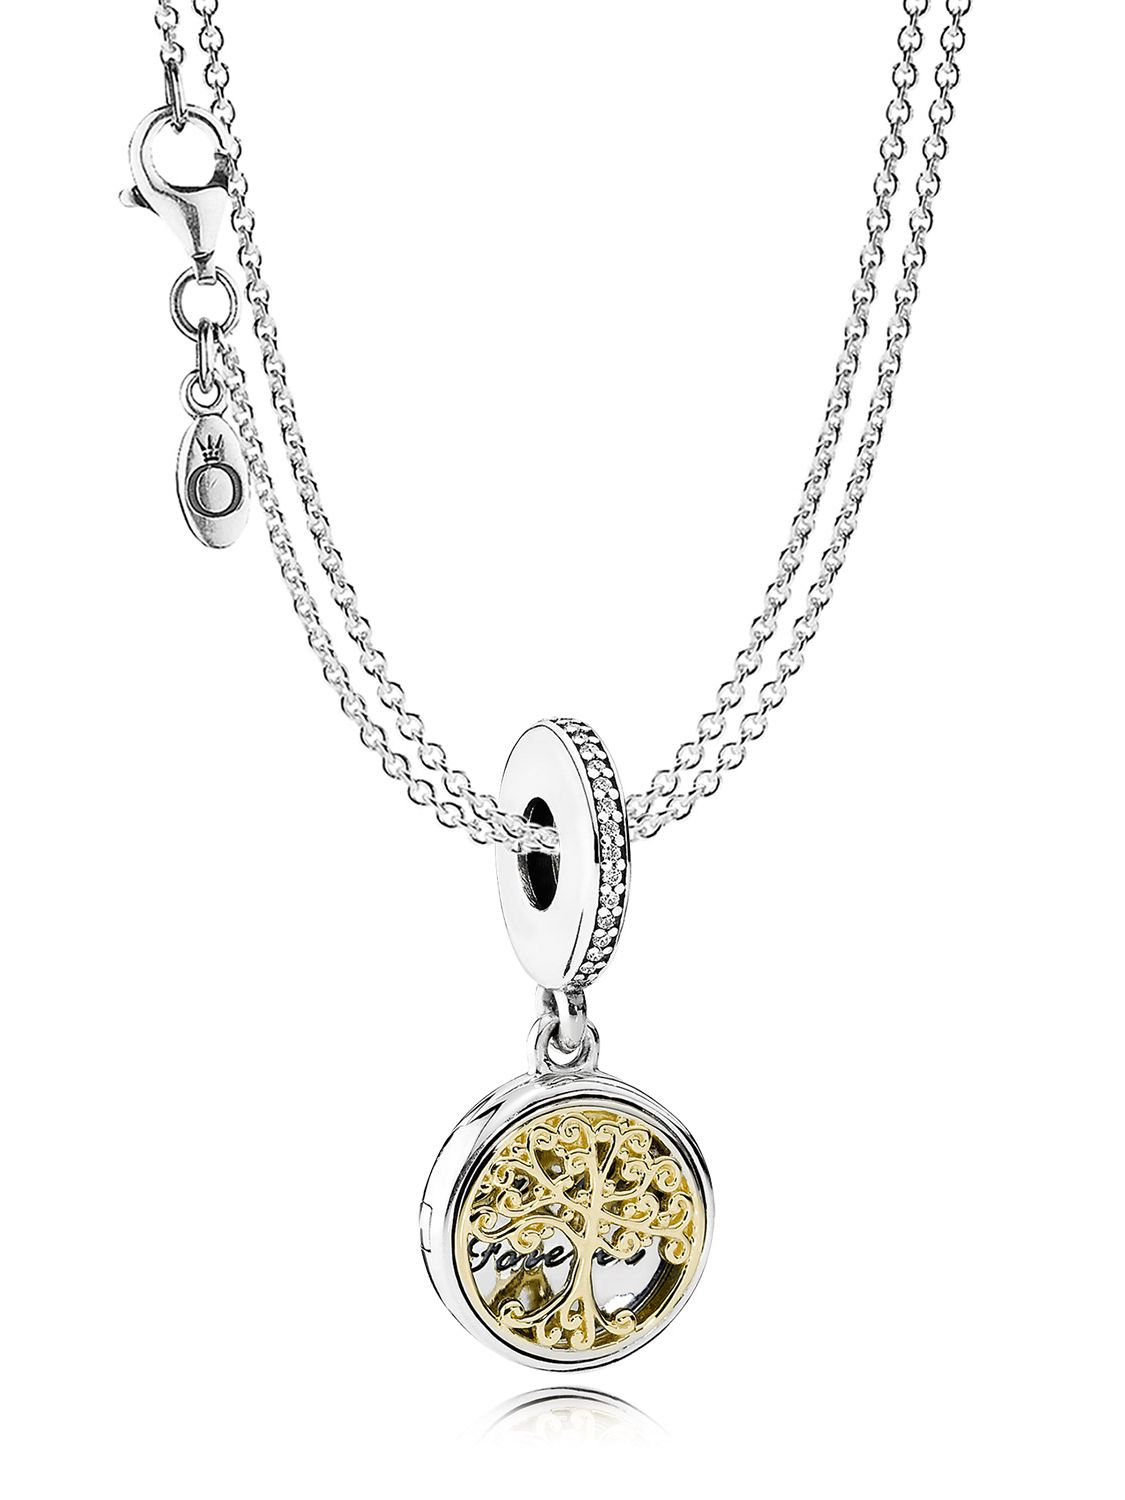 Denmark Pandora Family Necklace 4B9A9 56Caf In Recent Sparkling Family Tree Necklaces (View 3 of 25)